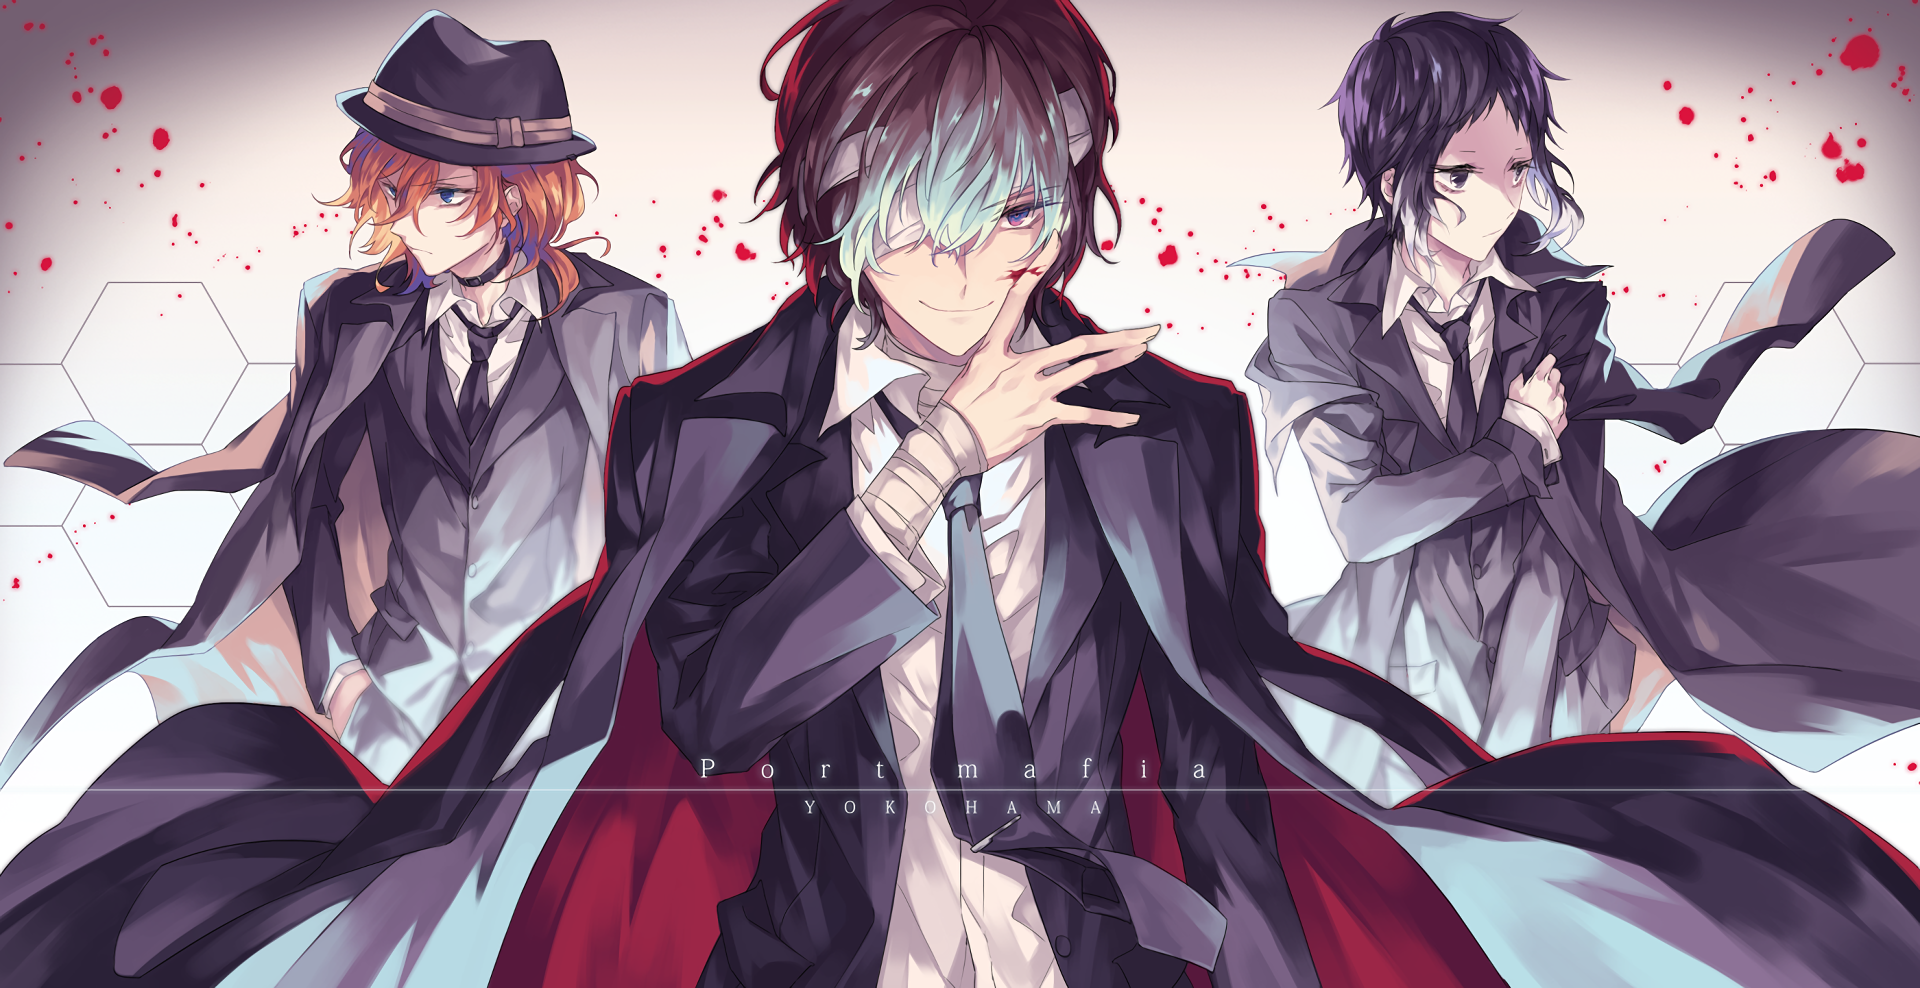 View, download, comment, and rate this 1920x988 Bungou